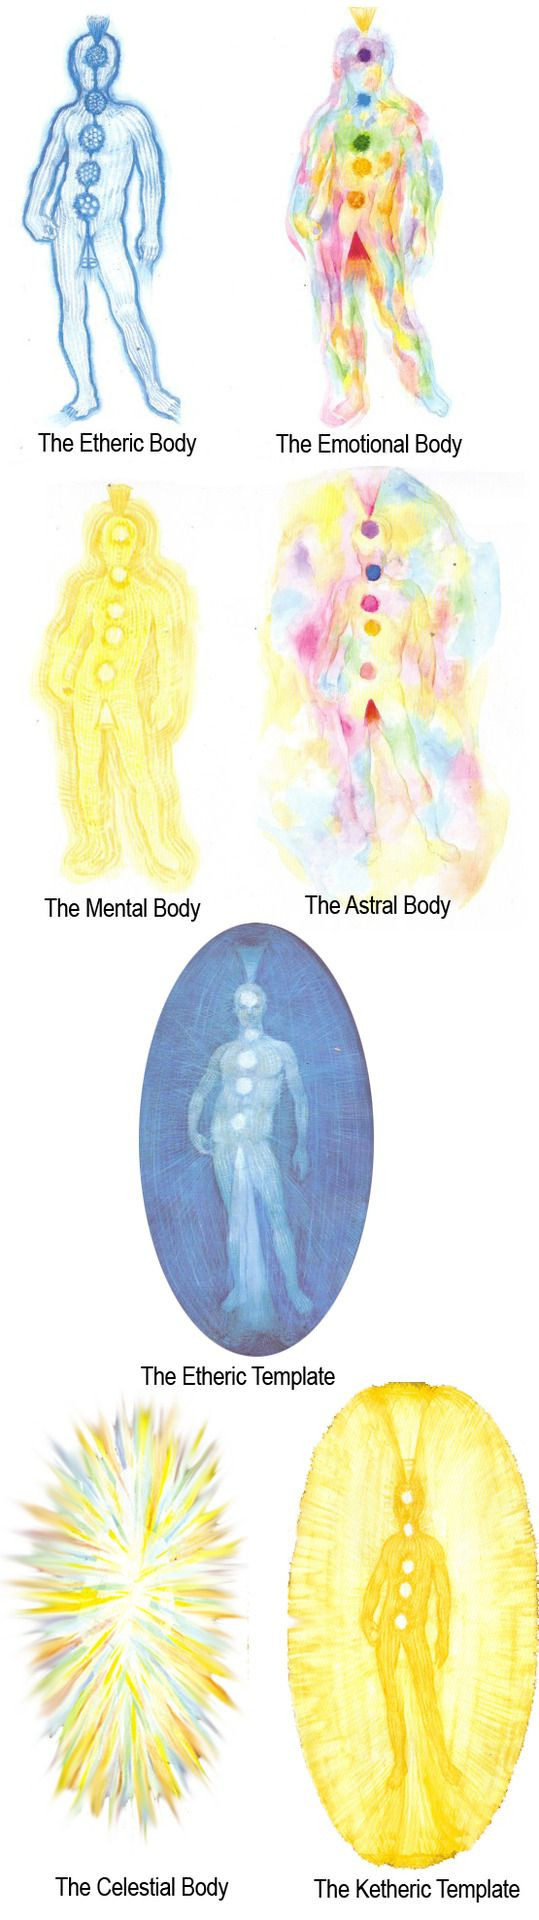 """The different layers of the Human Energy field in the Aura dimension from the book Barbara Brennan """"Handsof Light"""""""